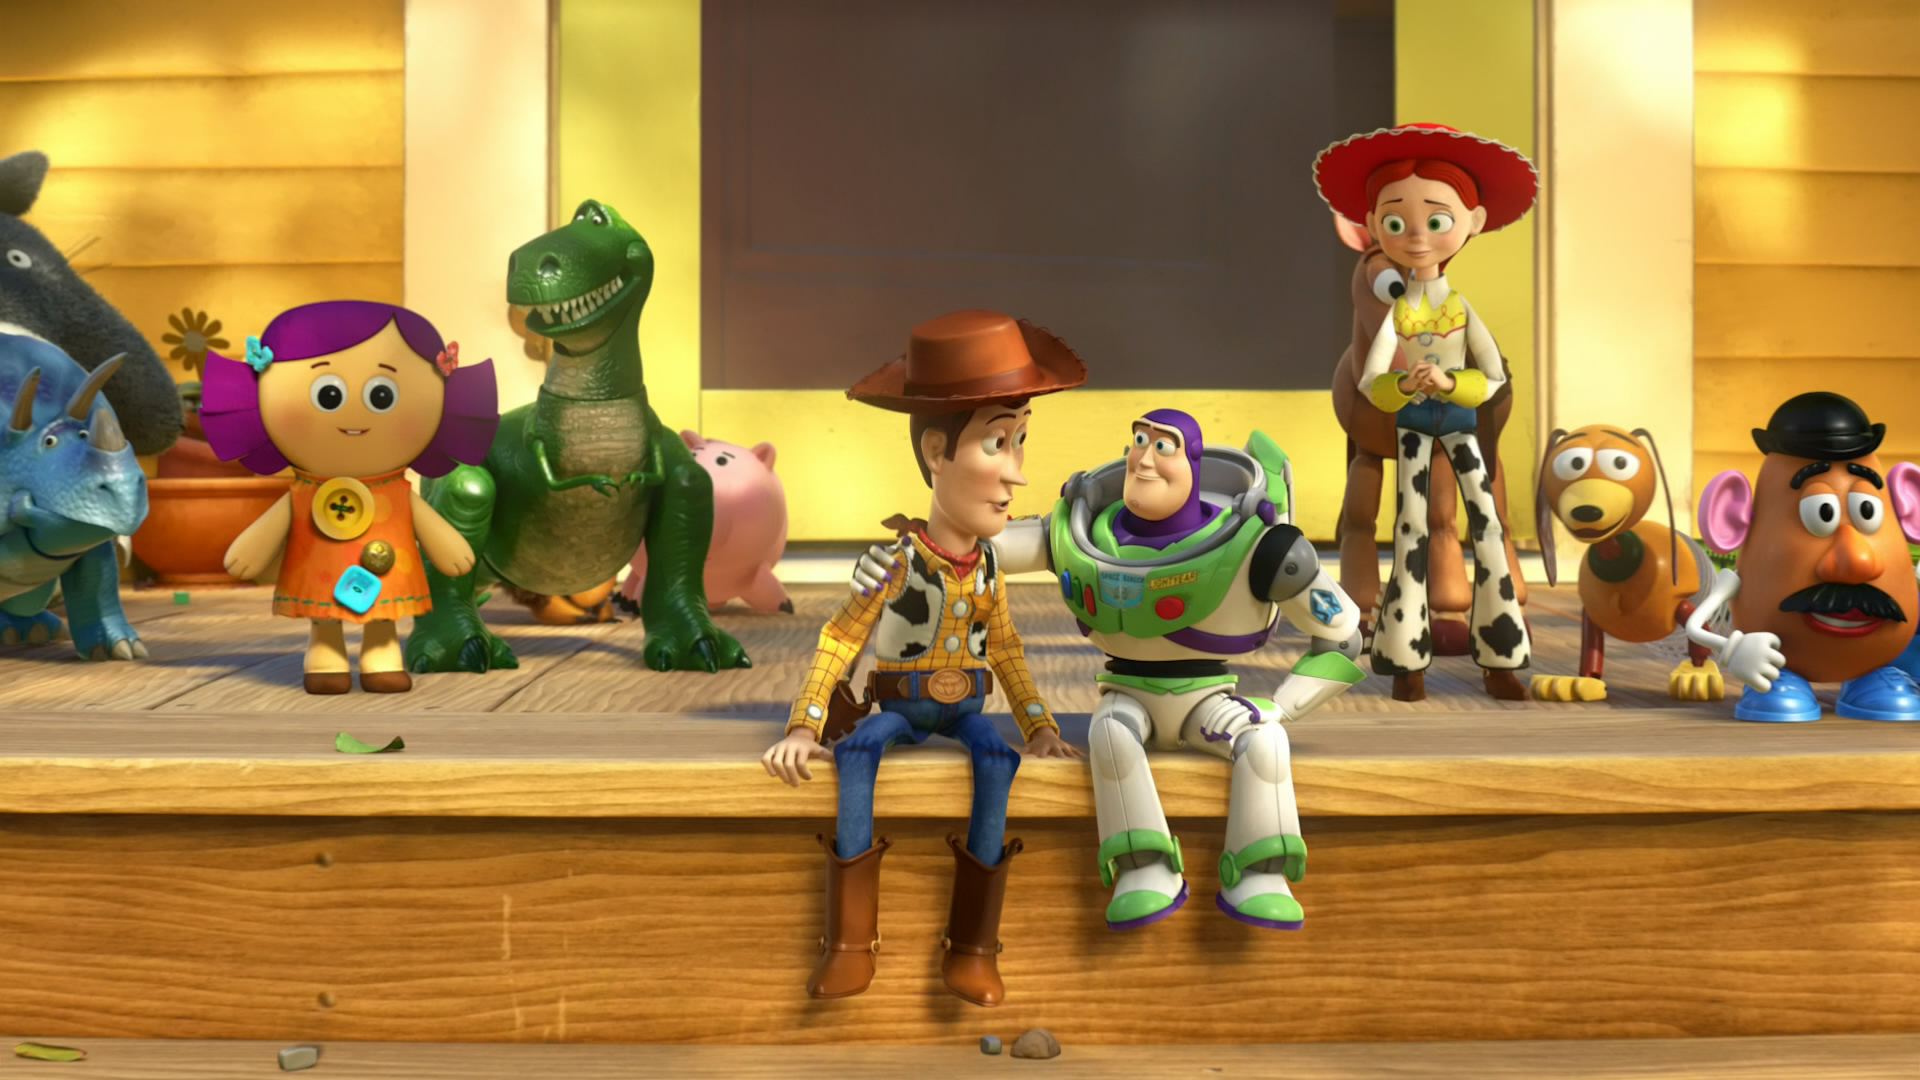 Pc Game 3d Wallpaper Toy Story 3 Details Launchbox Games Database